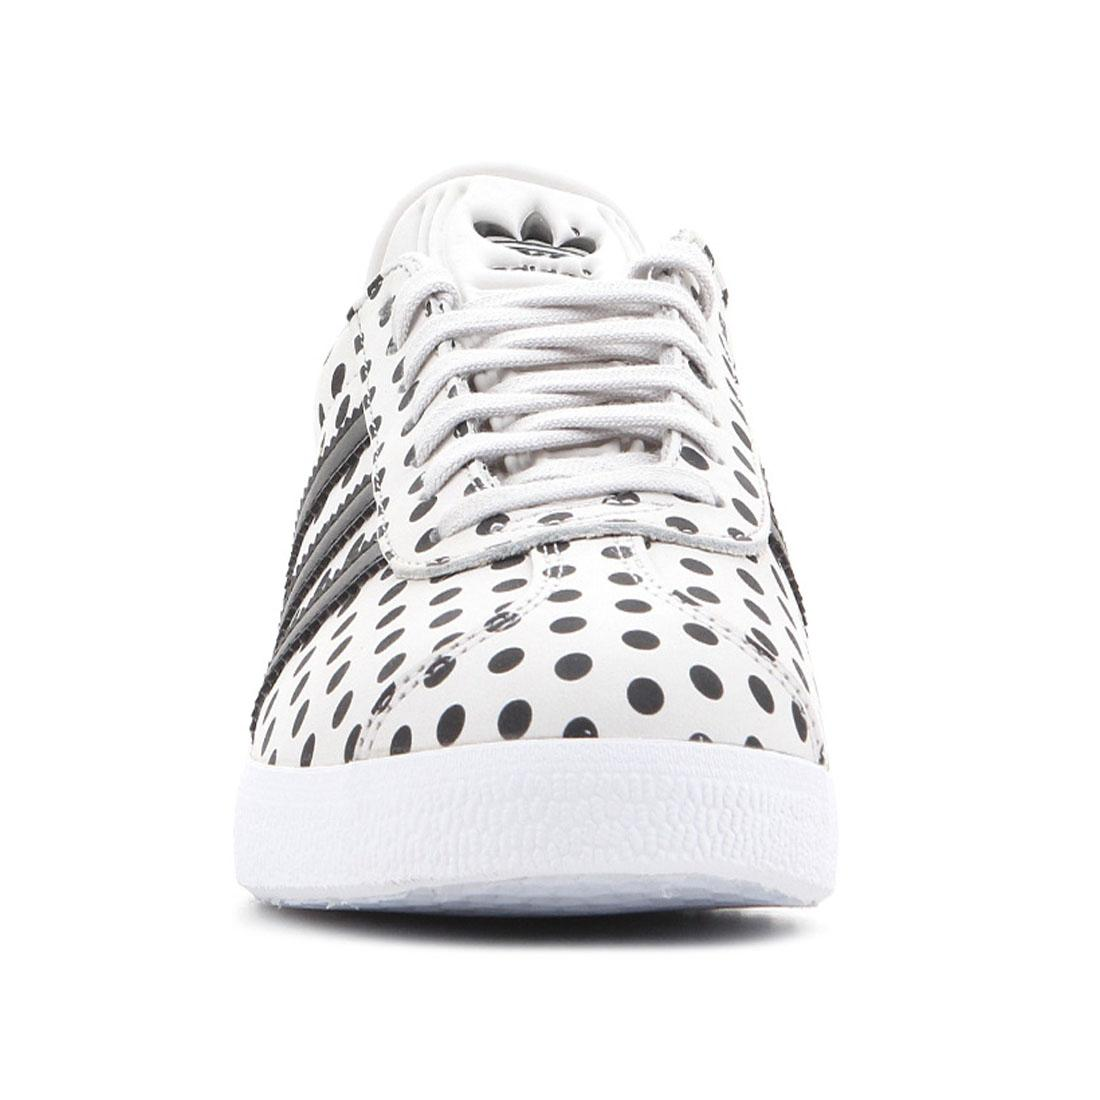 buy online c559d 3a979 adidas originals Gazelle White Black Ladies Trainers Polka Dots Womens Shoes